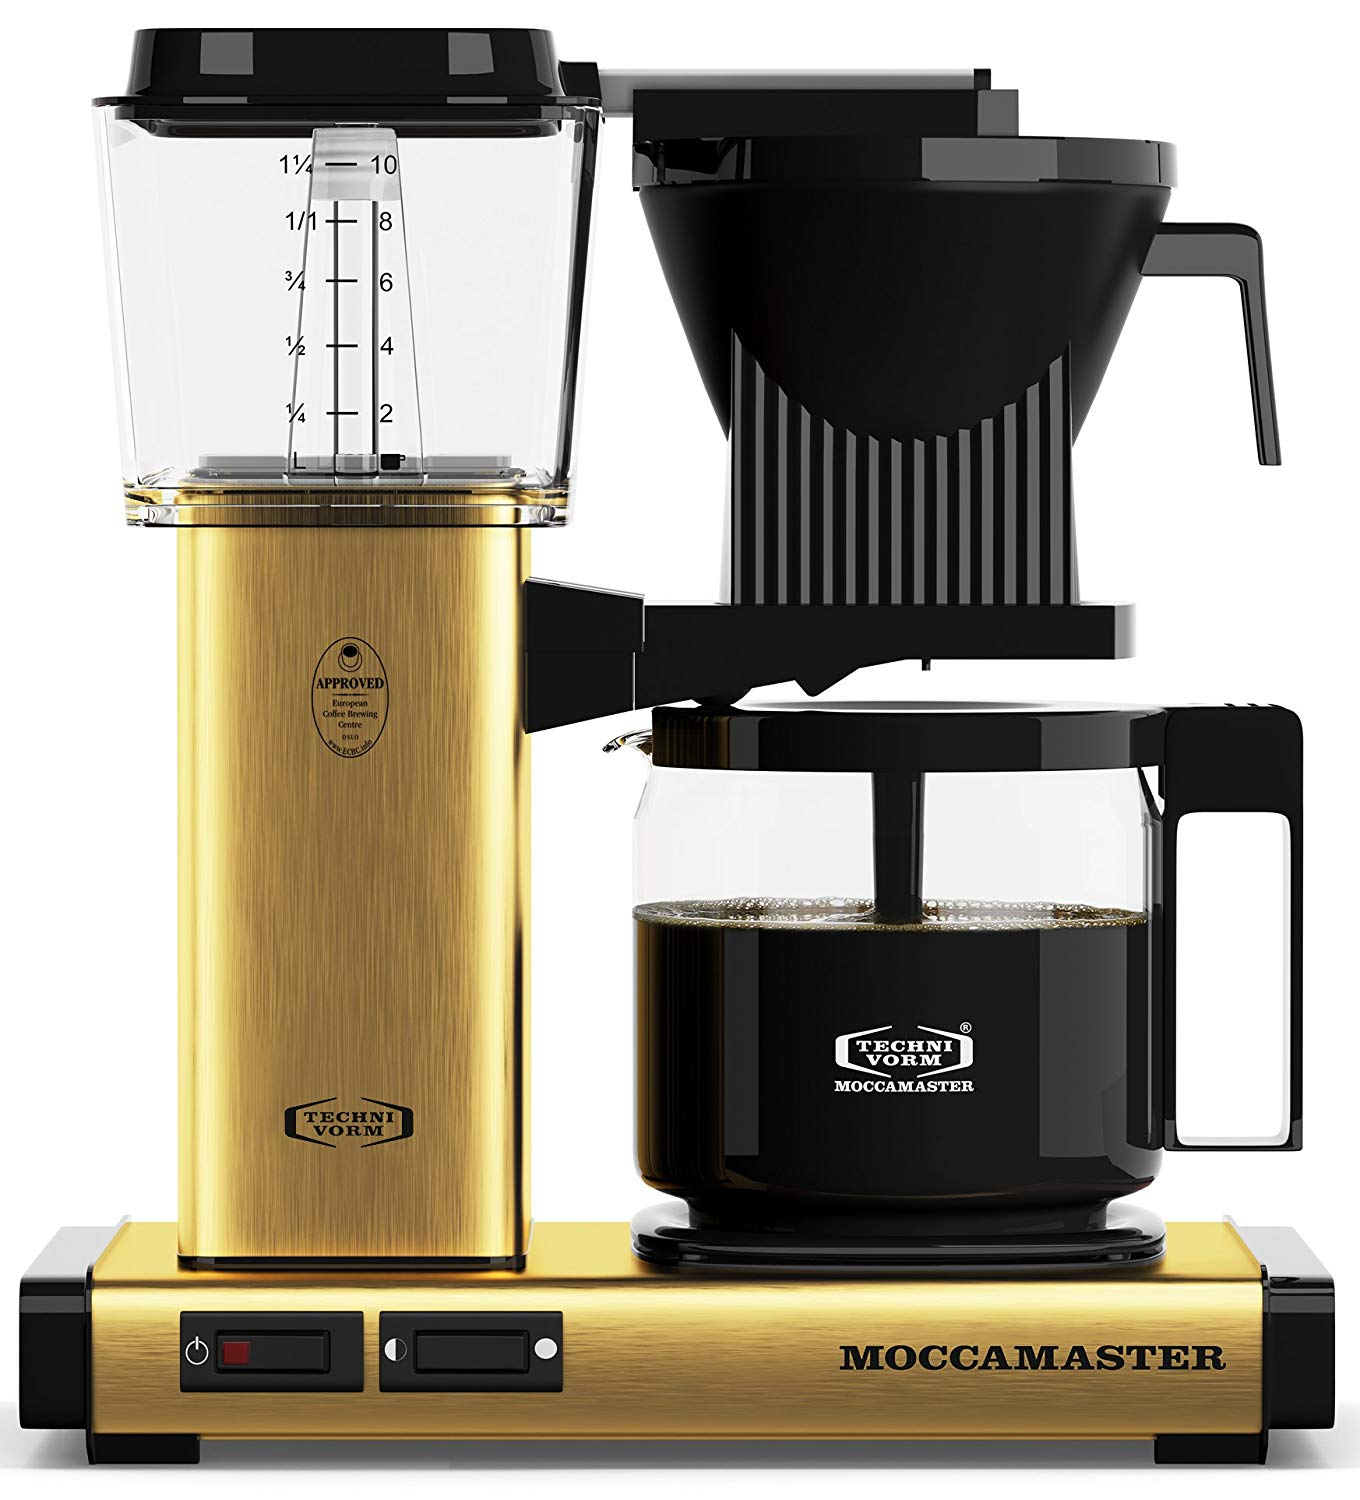 Best Drip Coffee Makers Cusinart Chemex Mr Coffee And More